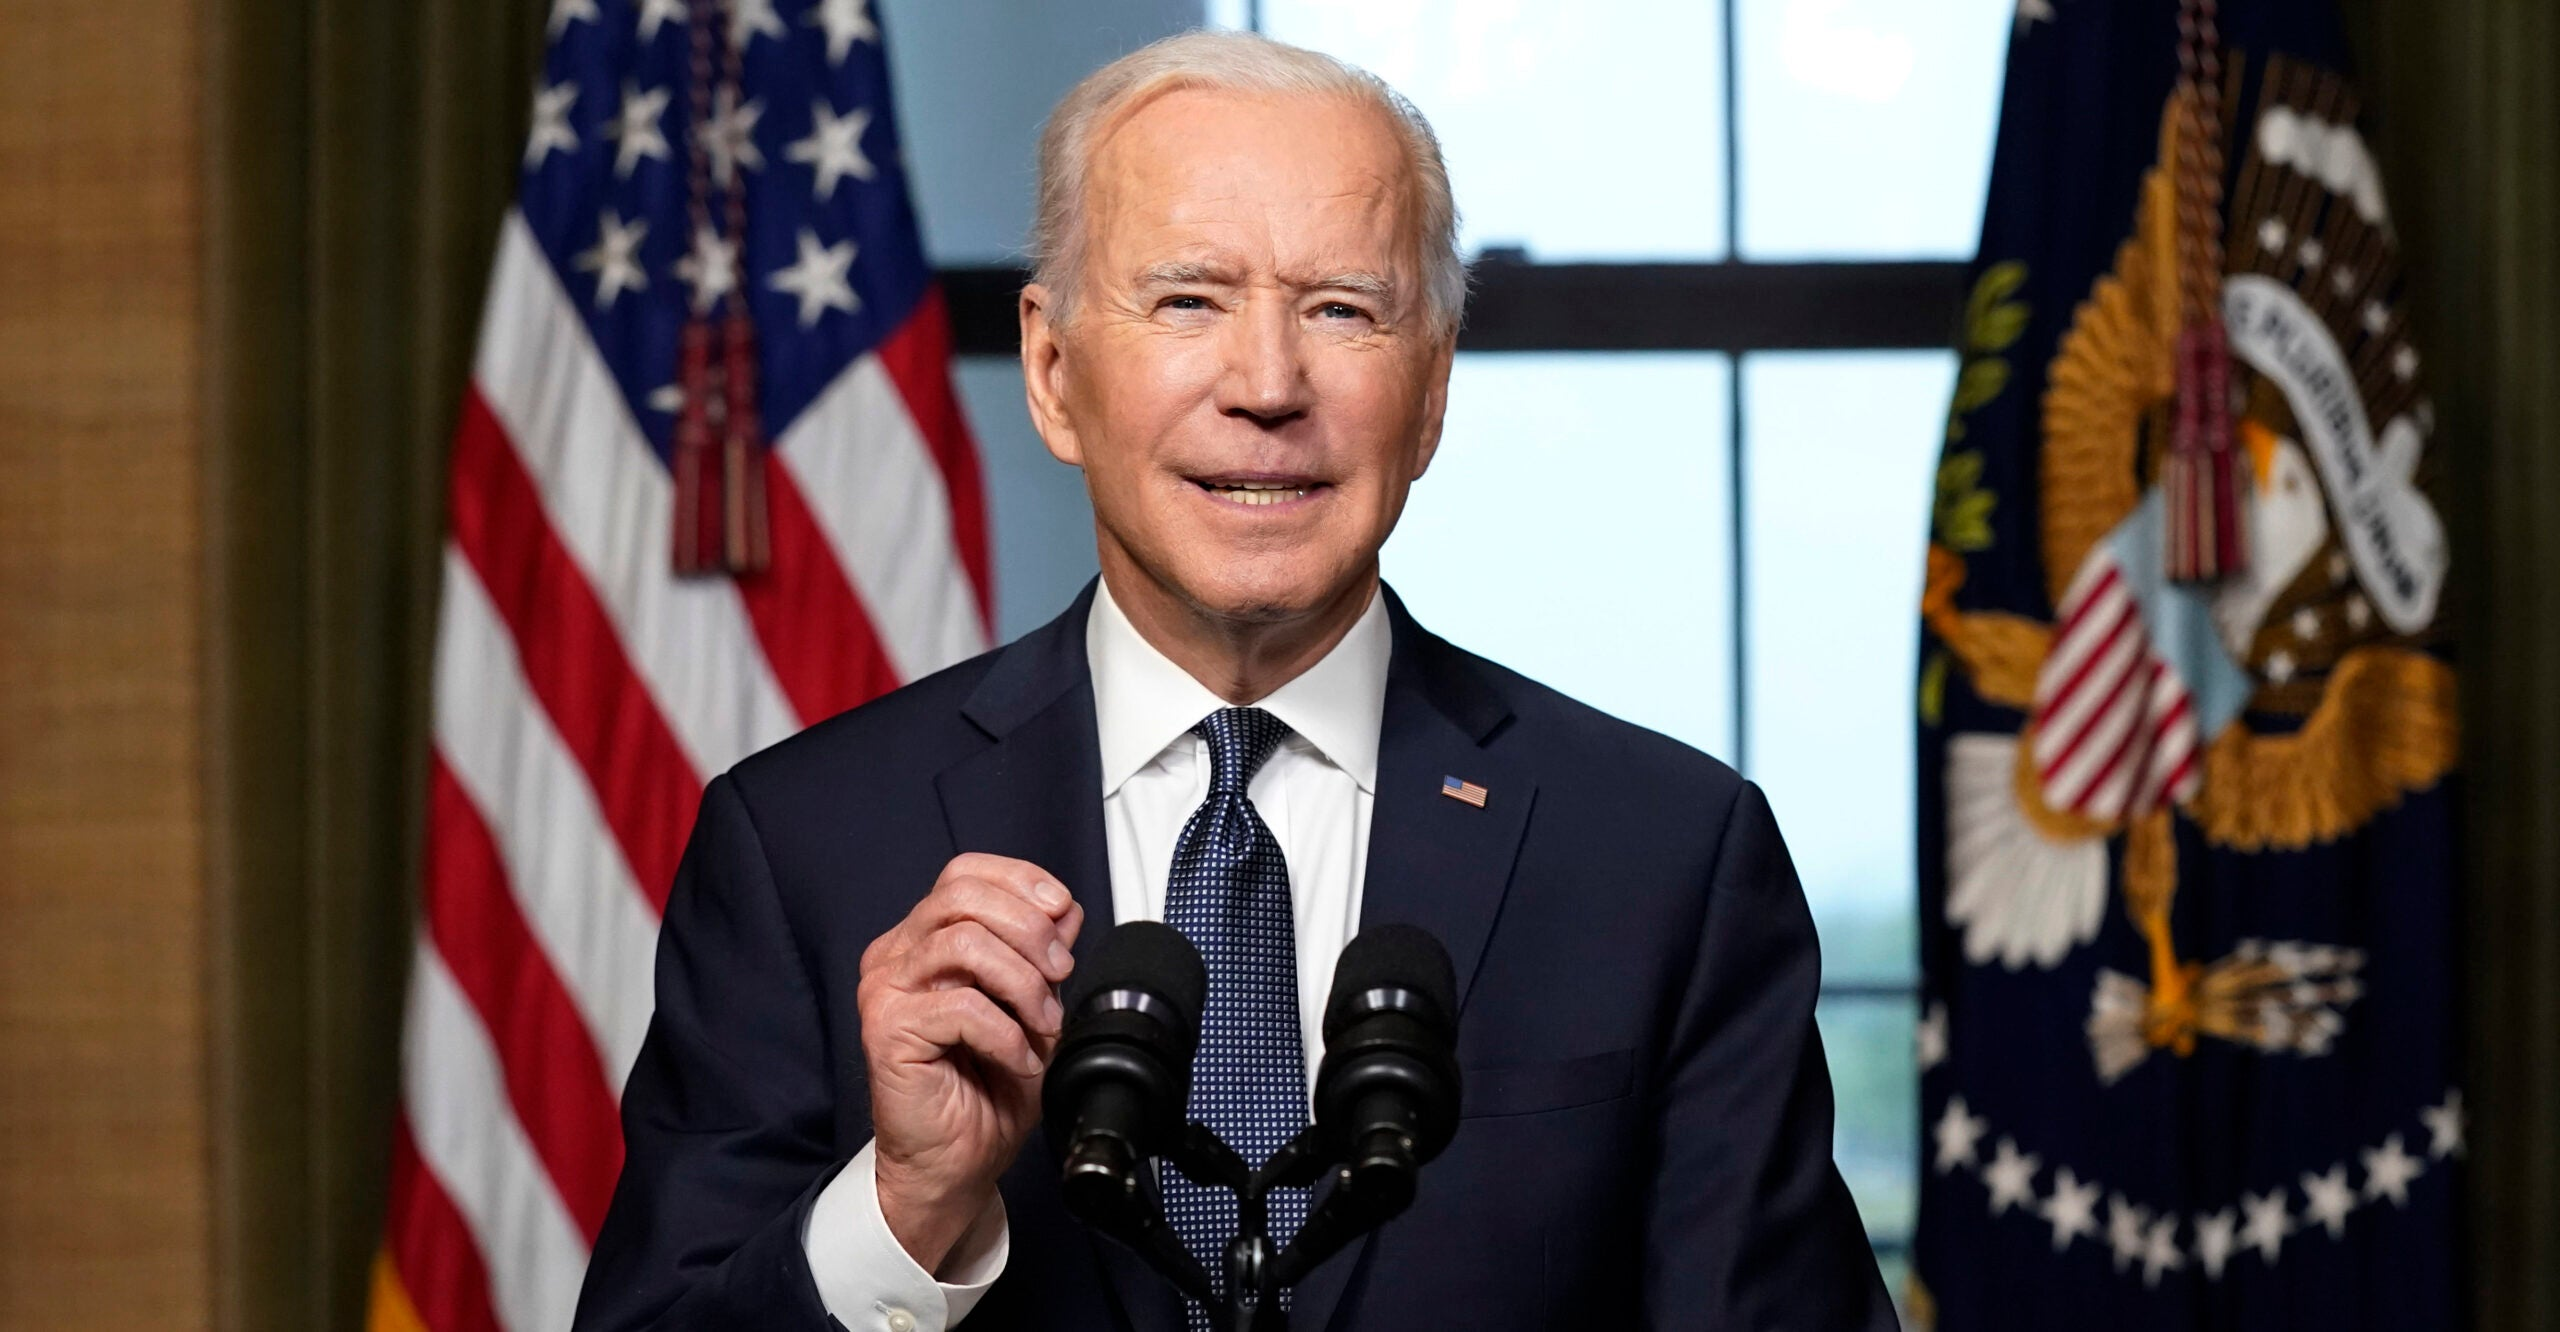 Biden Foreign Policy Has America's Enemies Feeling Empowered